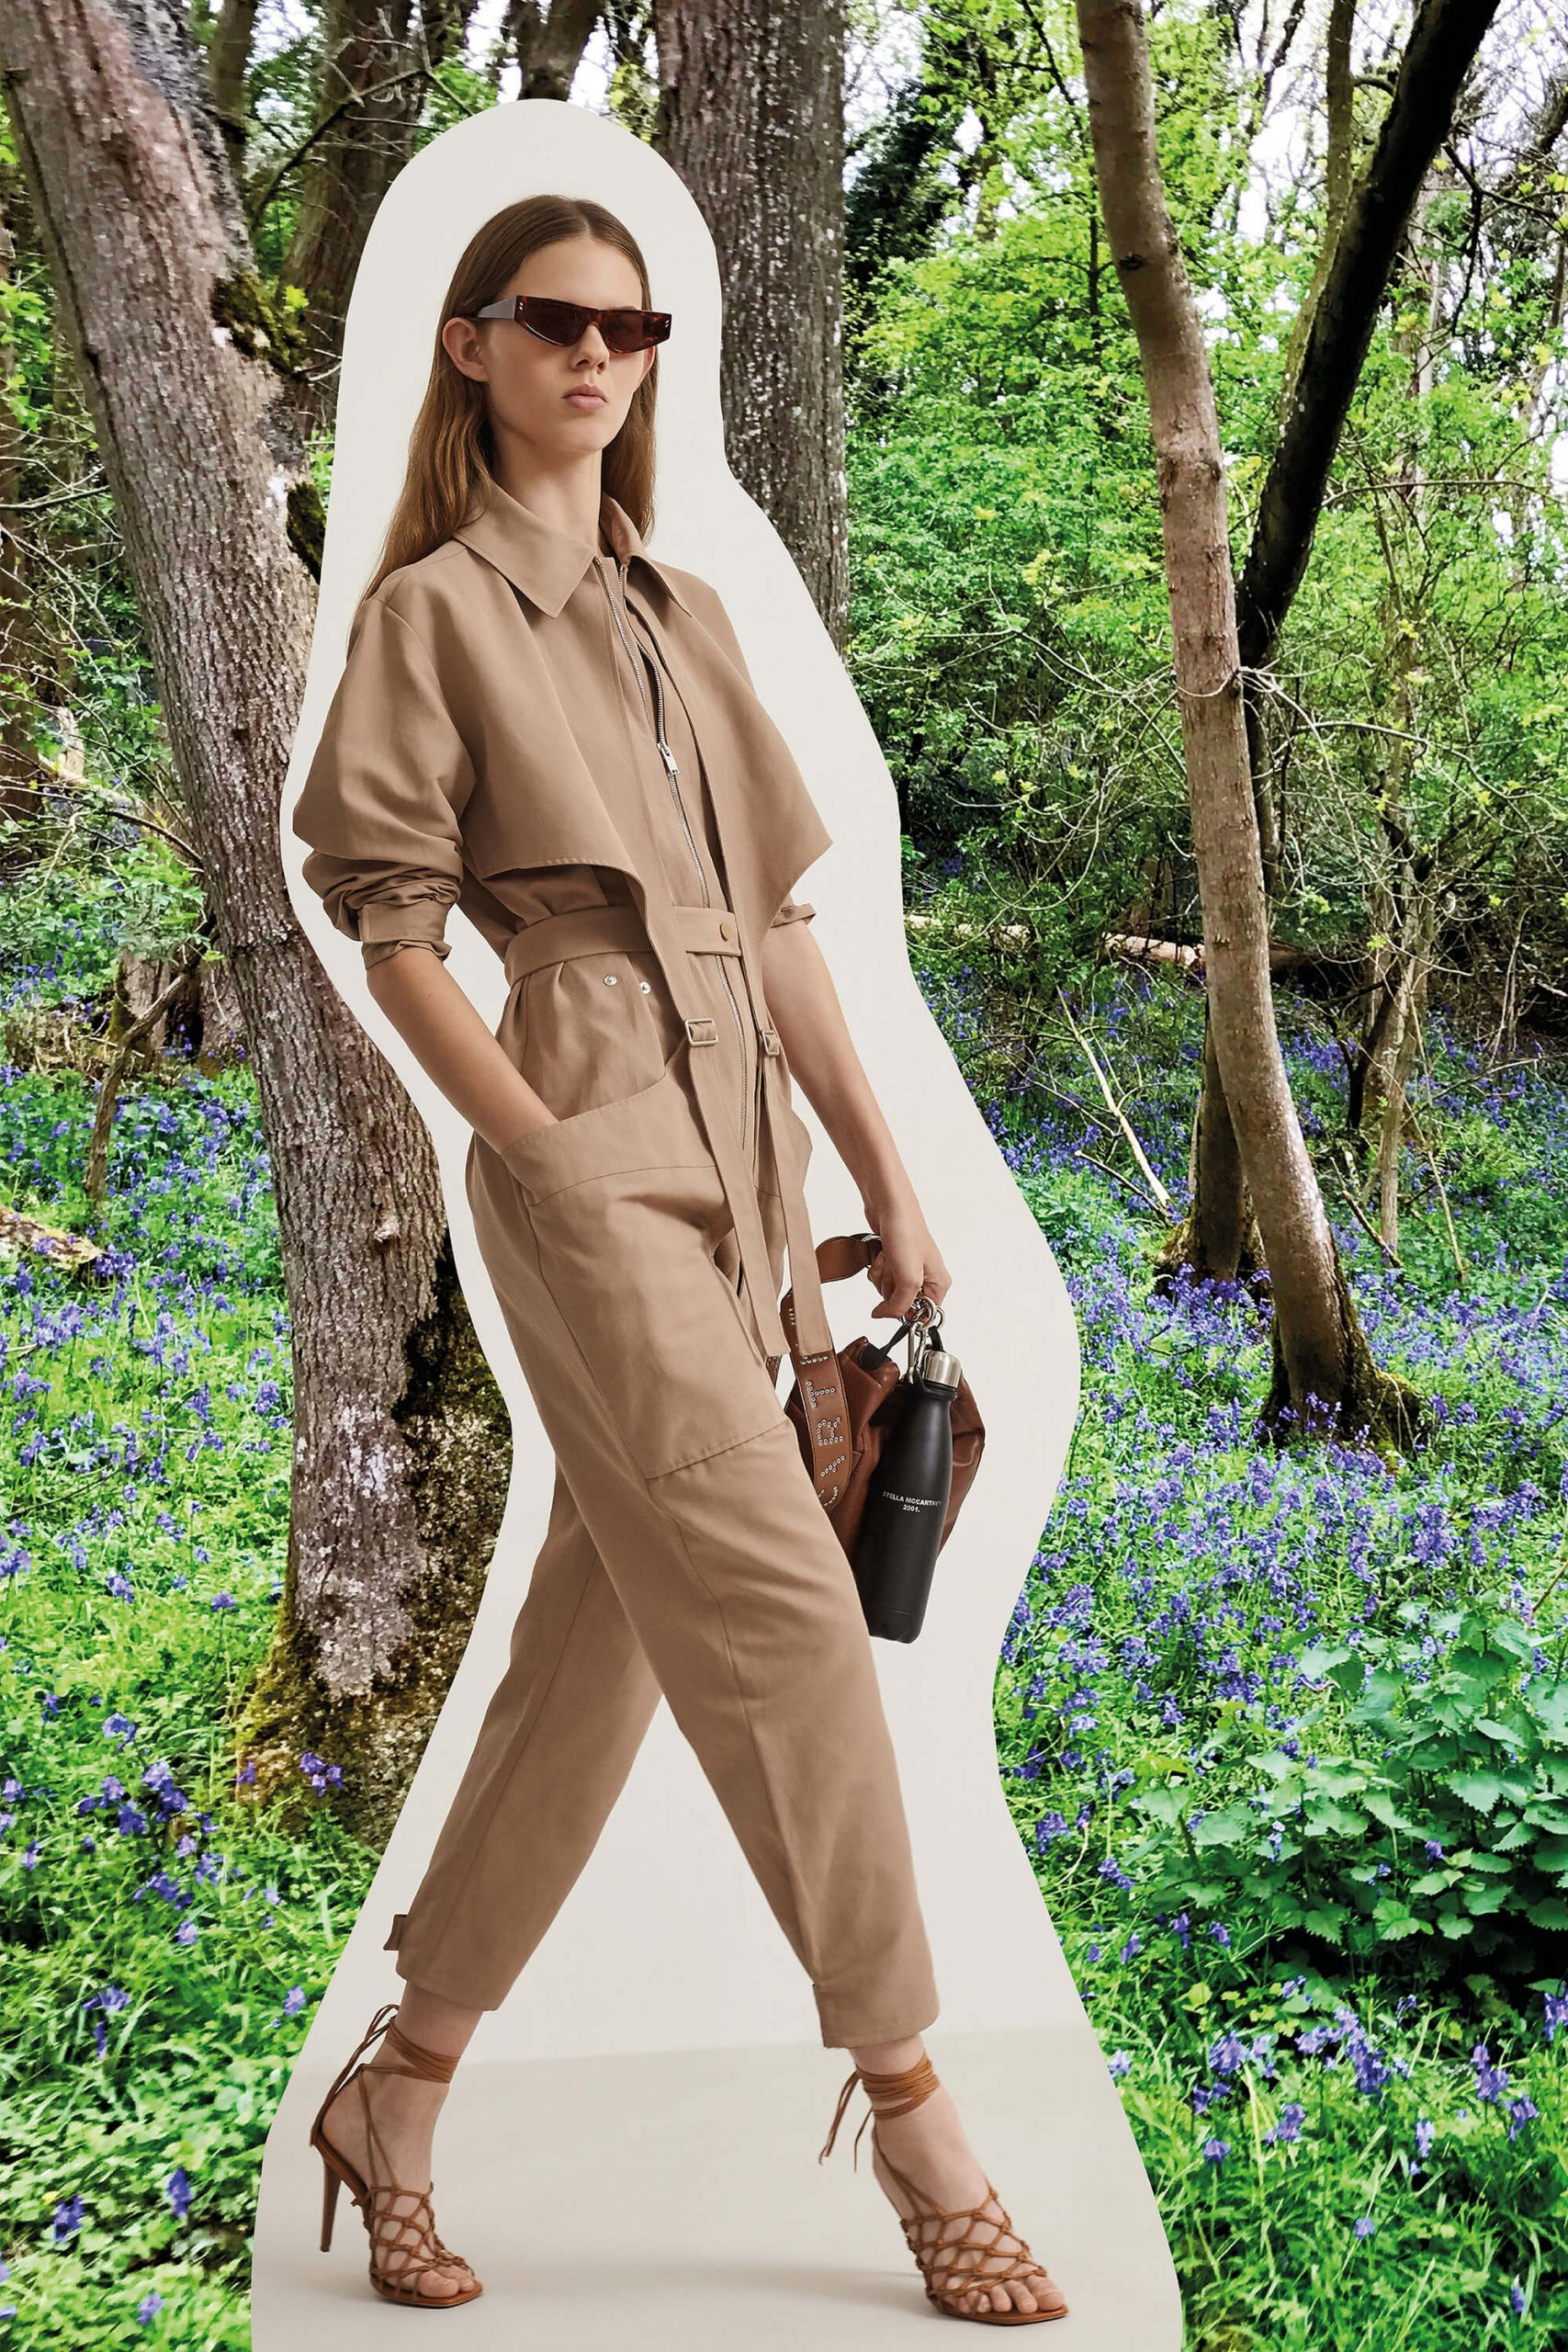 Fashion sector is causing major biodiversity loss